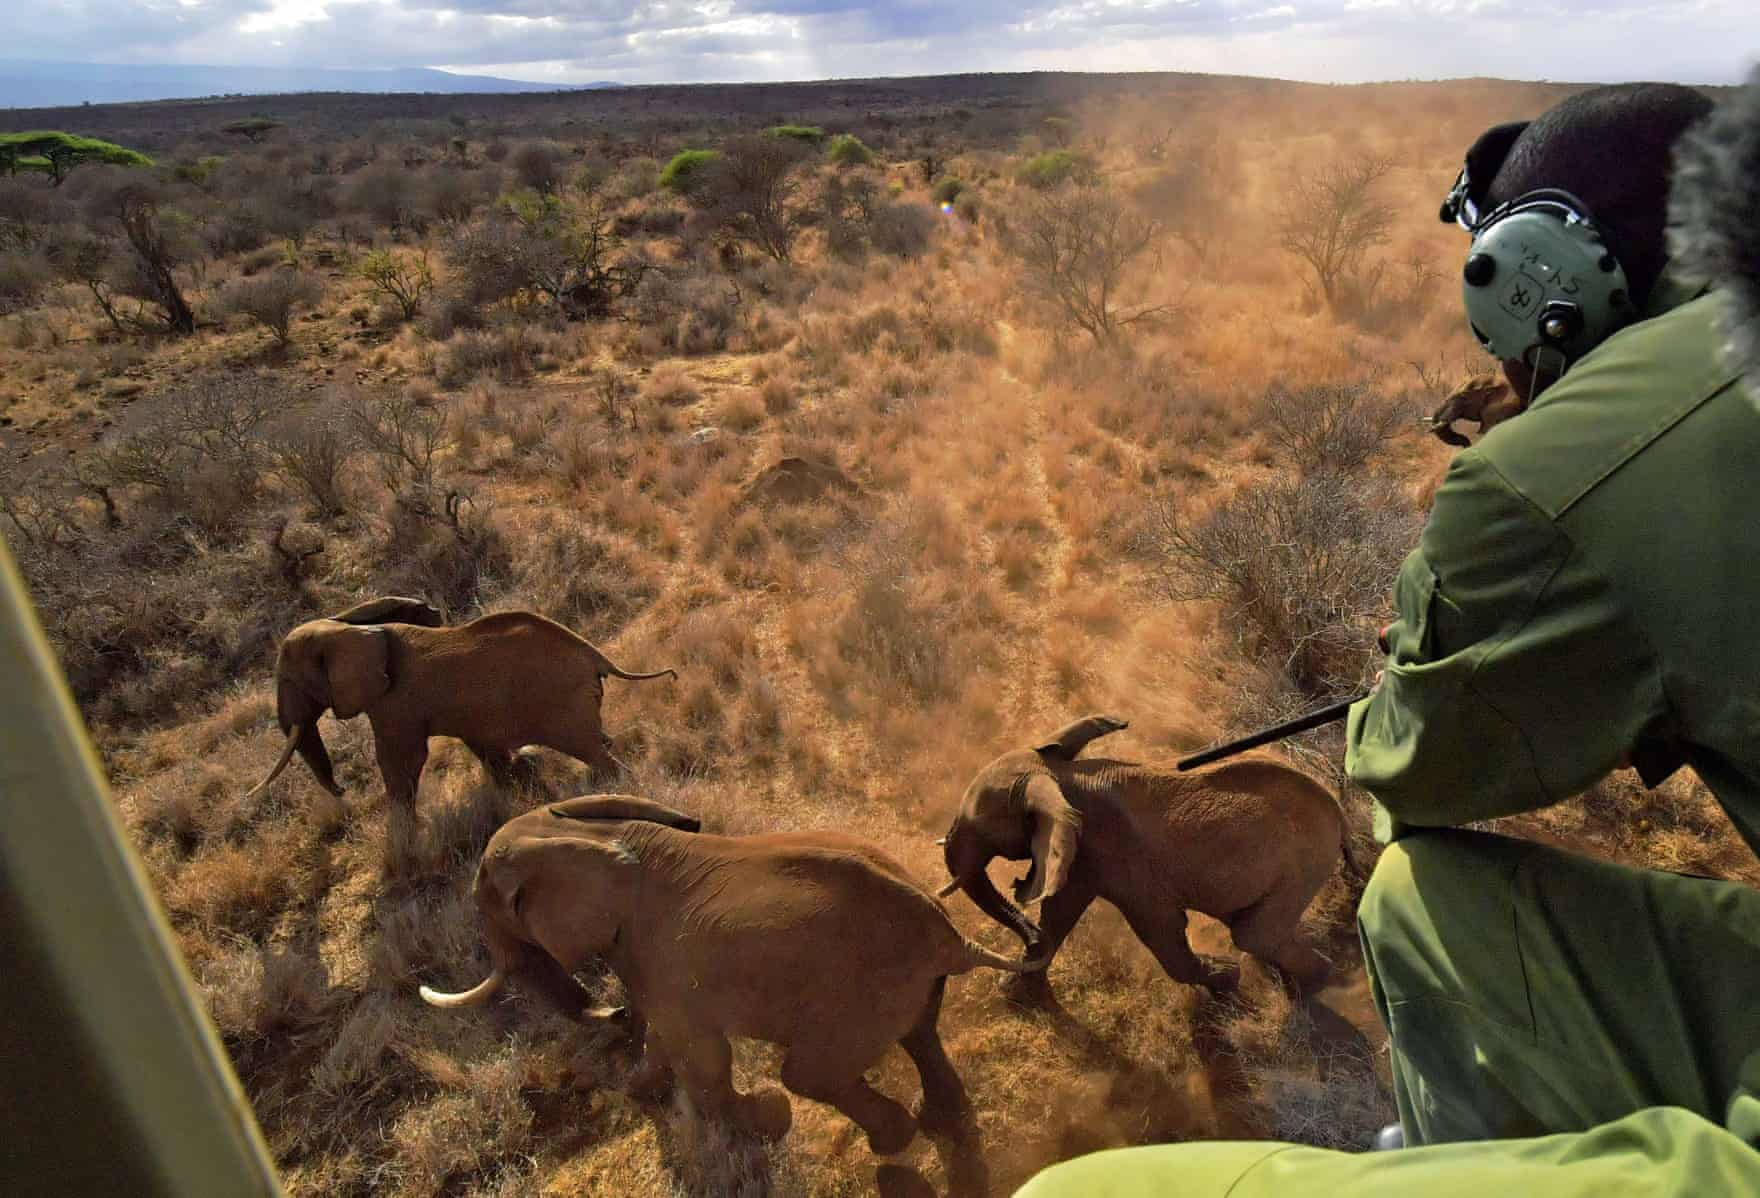 Can elephants and humans live together?